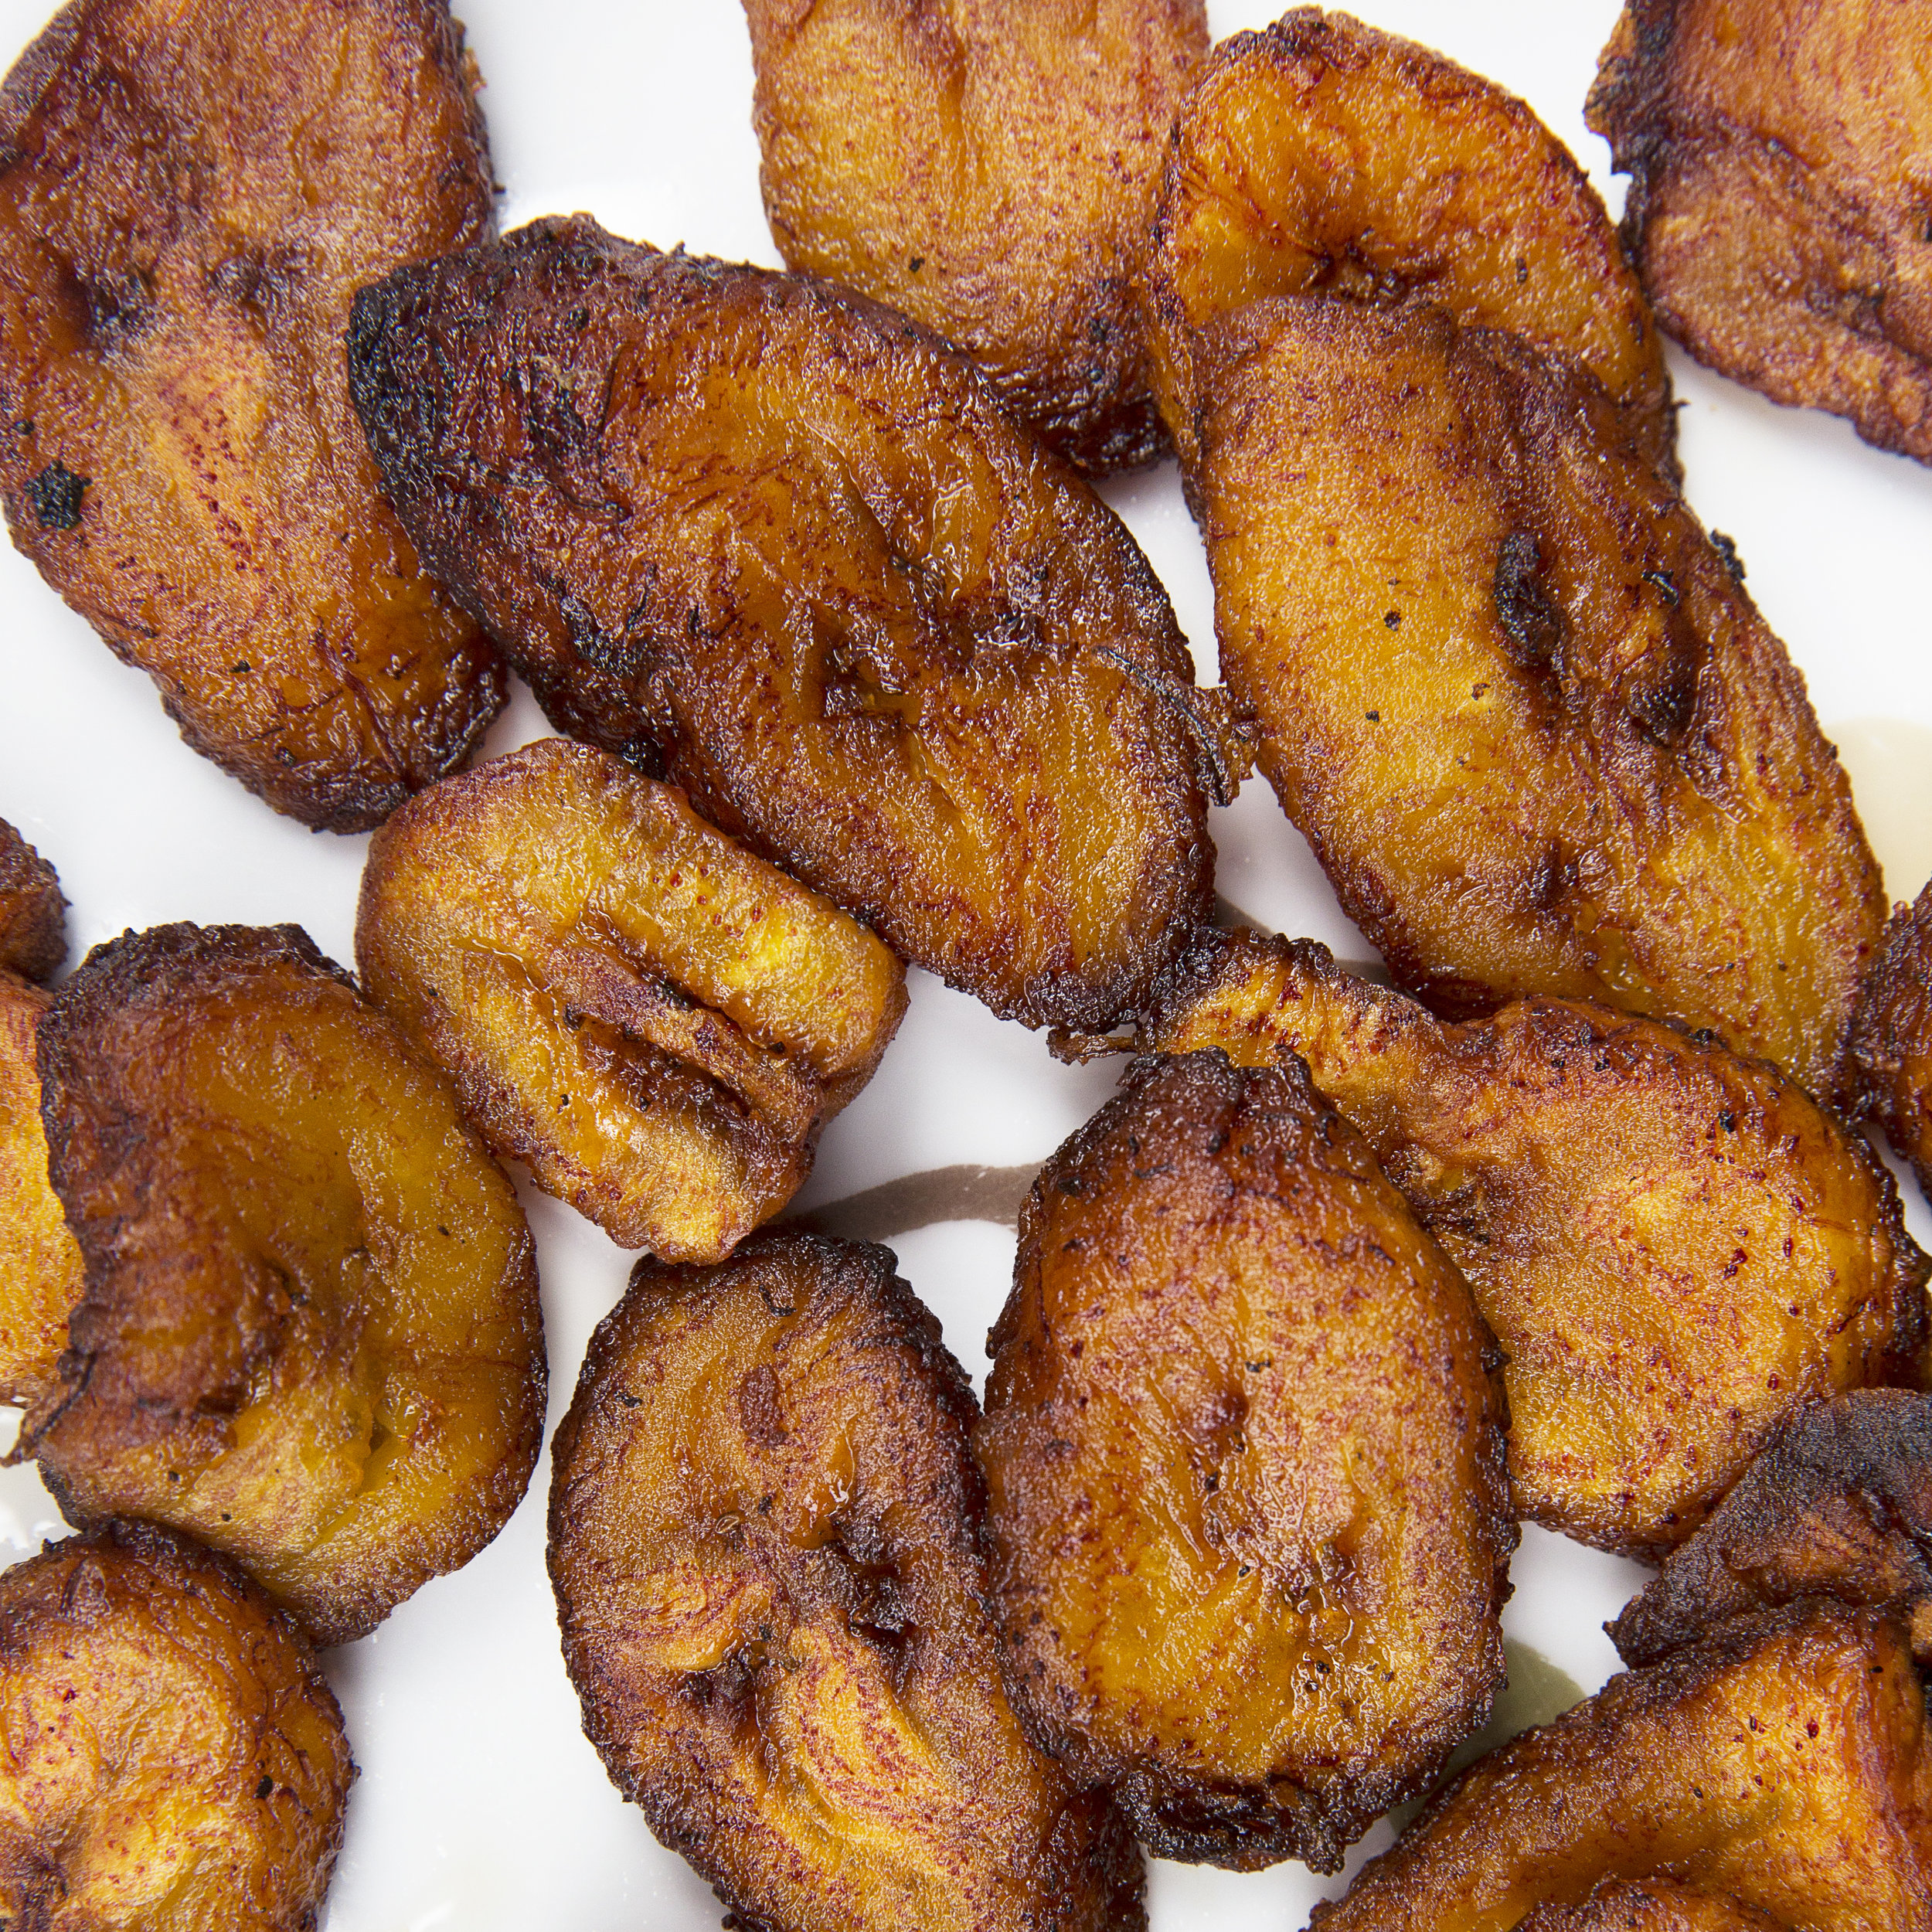 Yummy fried plantains!